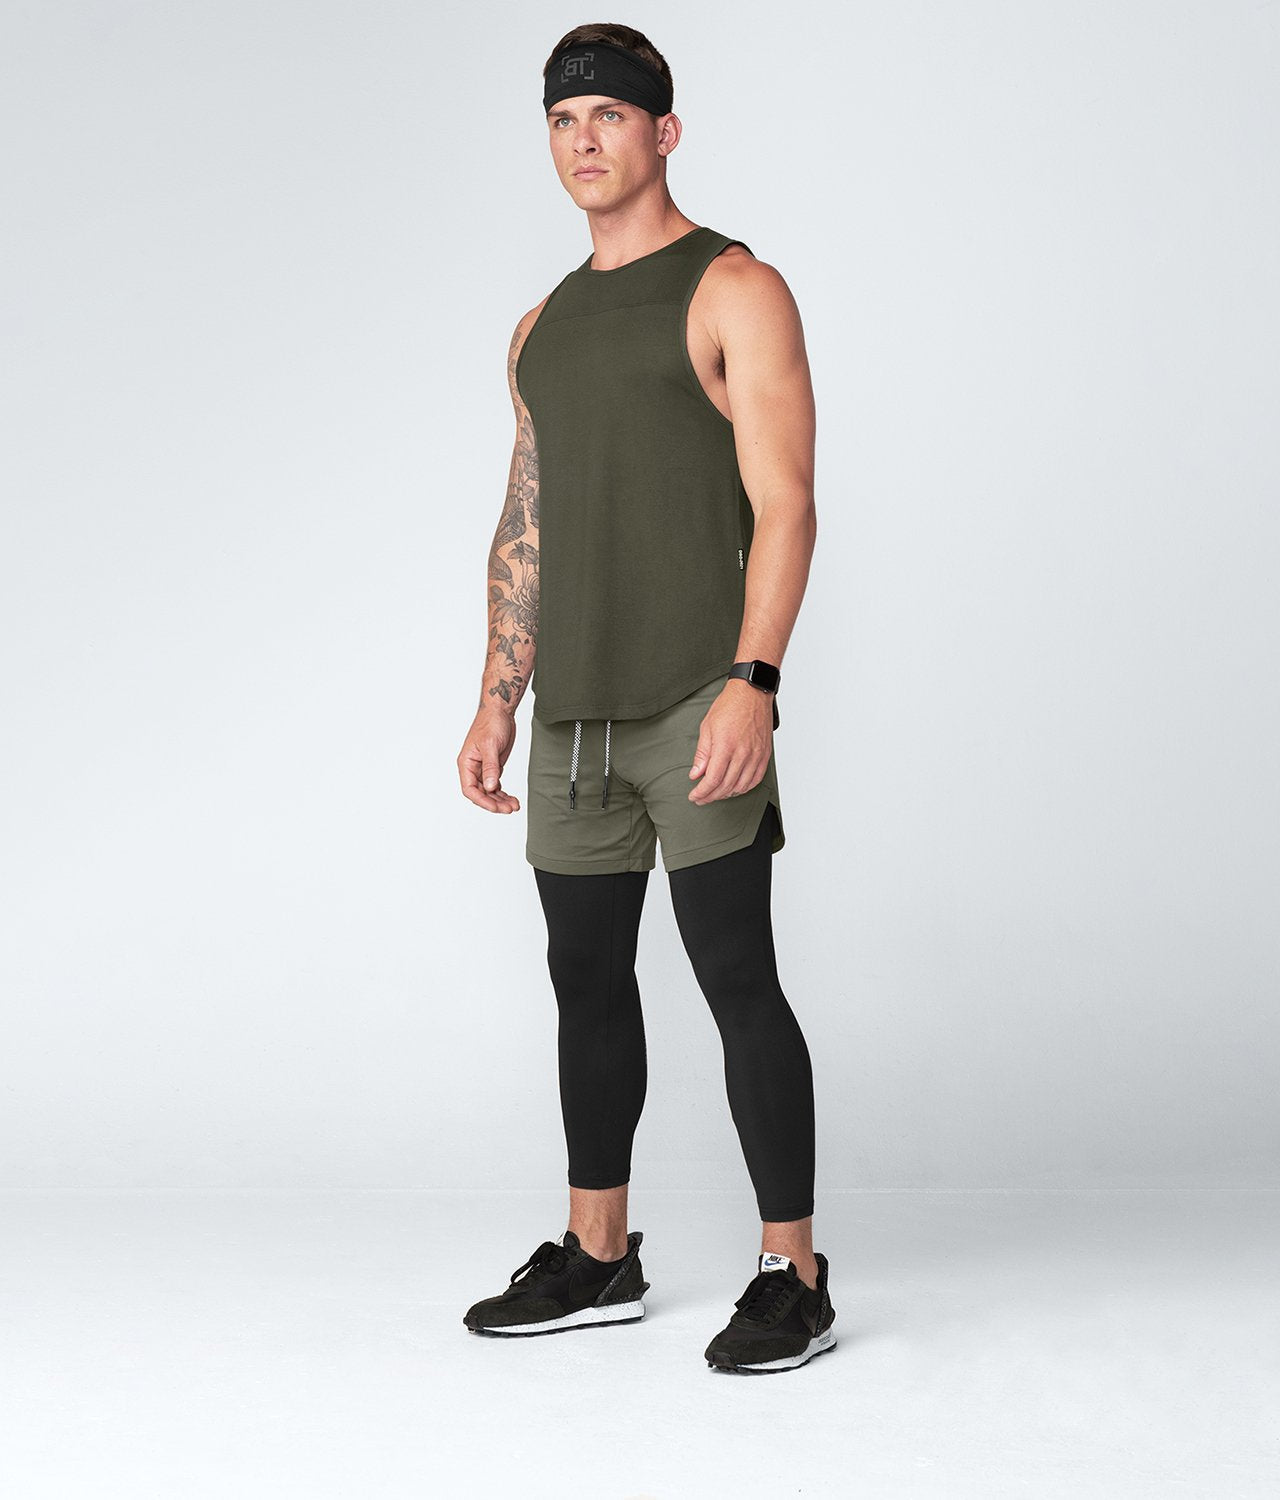 Born Tough United Kingdom Core Fit Light-Weight Army Green Gym Workout Tank Top for Men